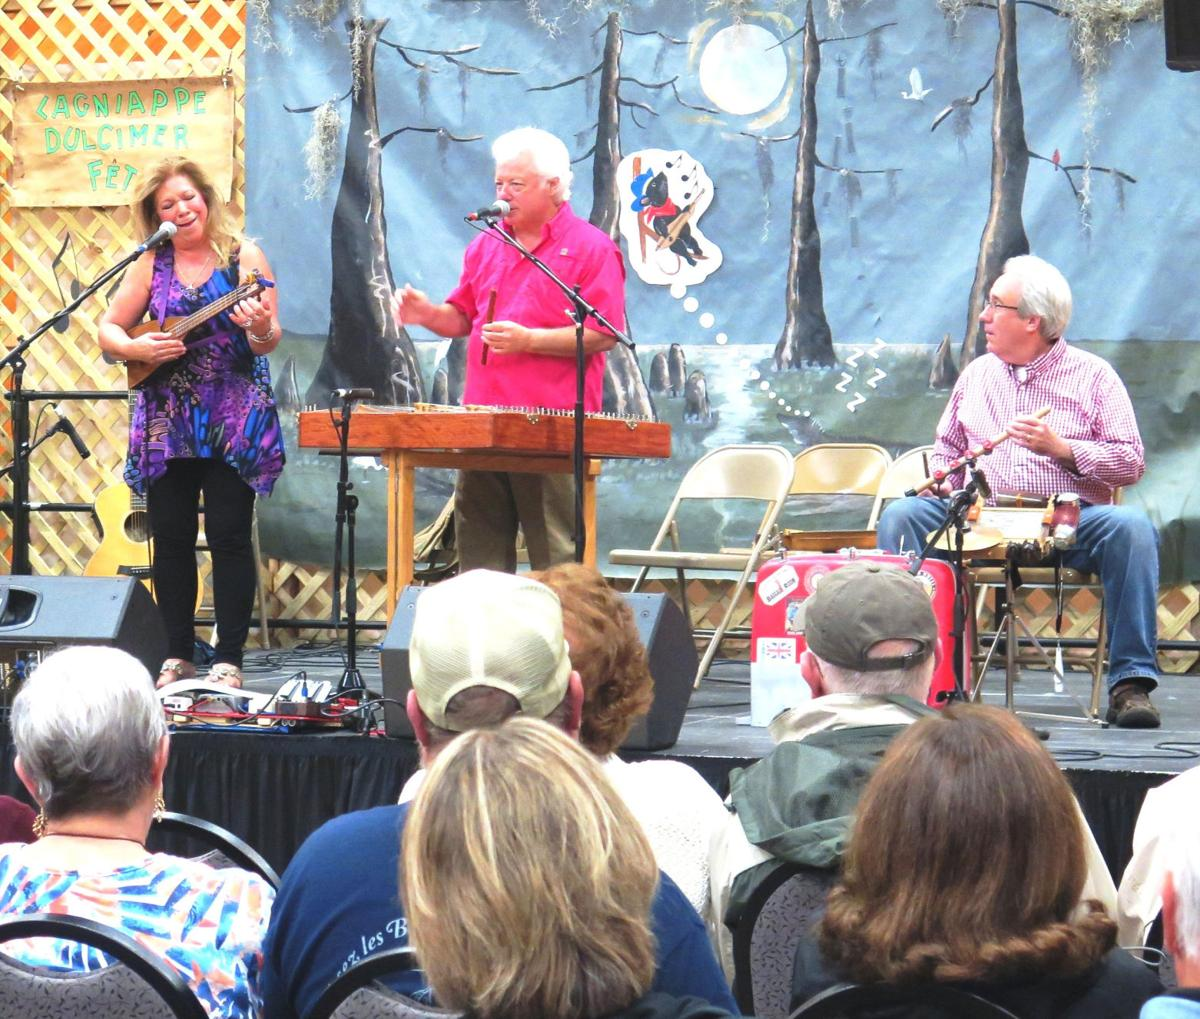 16th Annual Lagniappe Dulcimer Society Fête scheduled for March